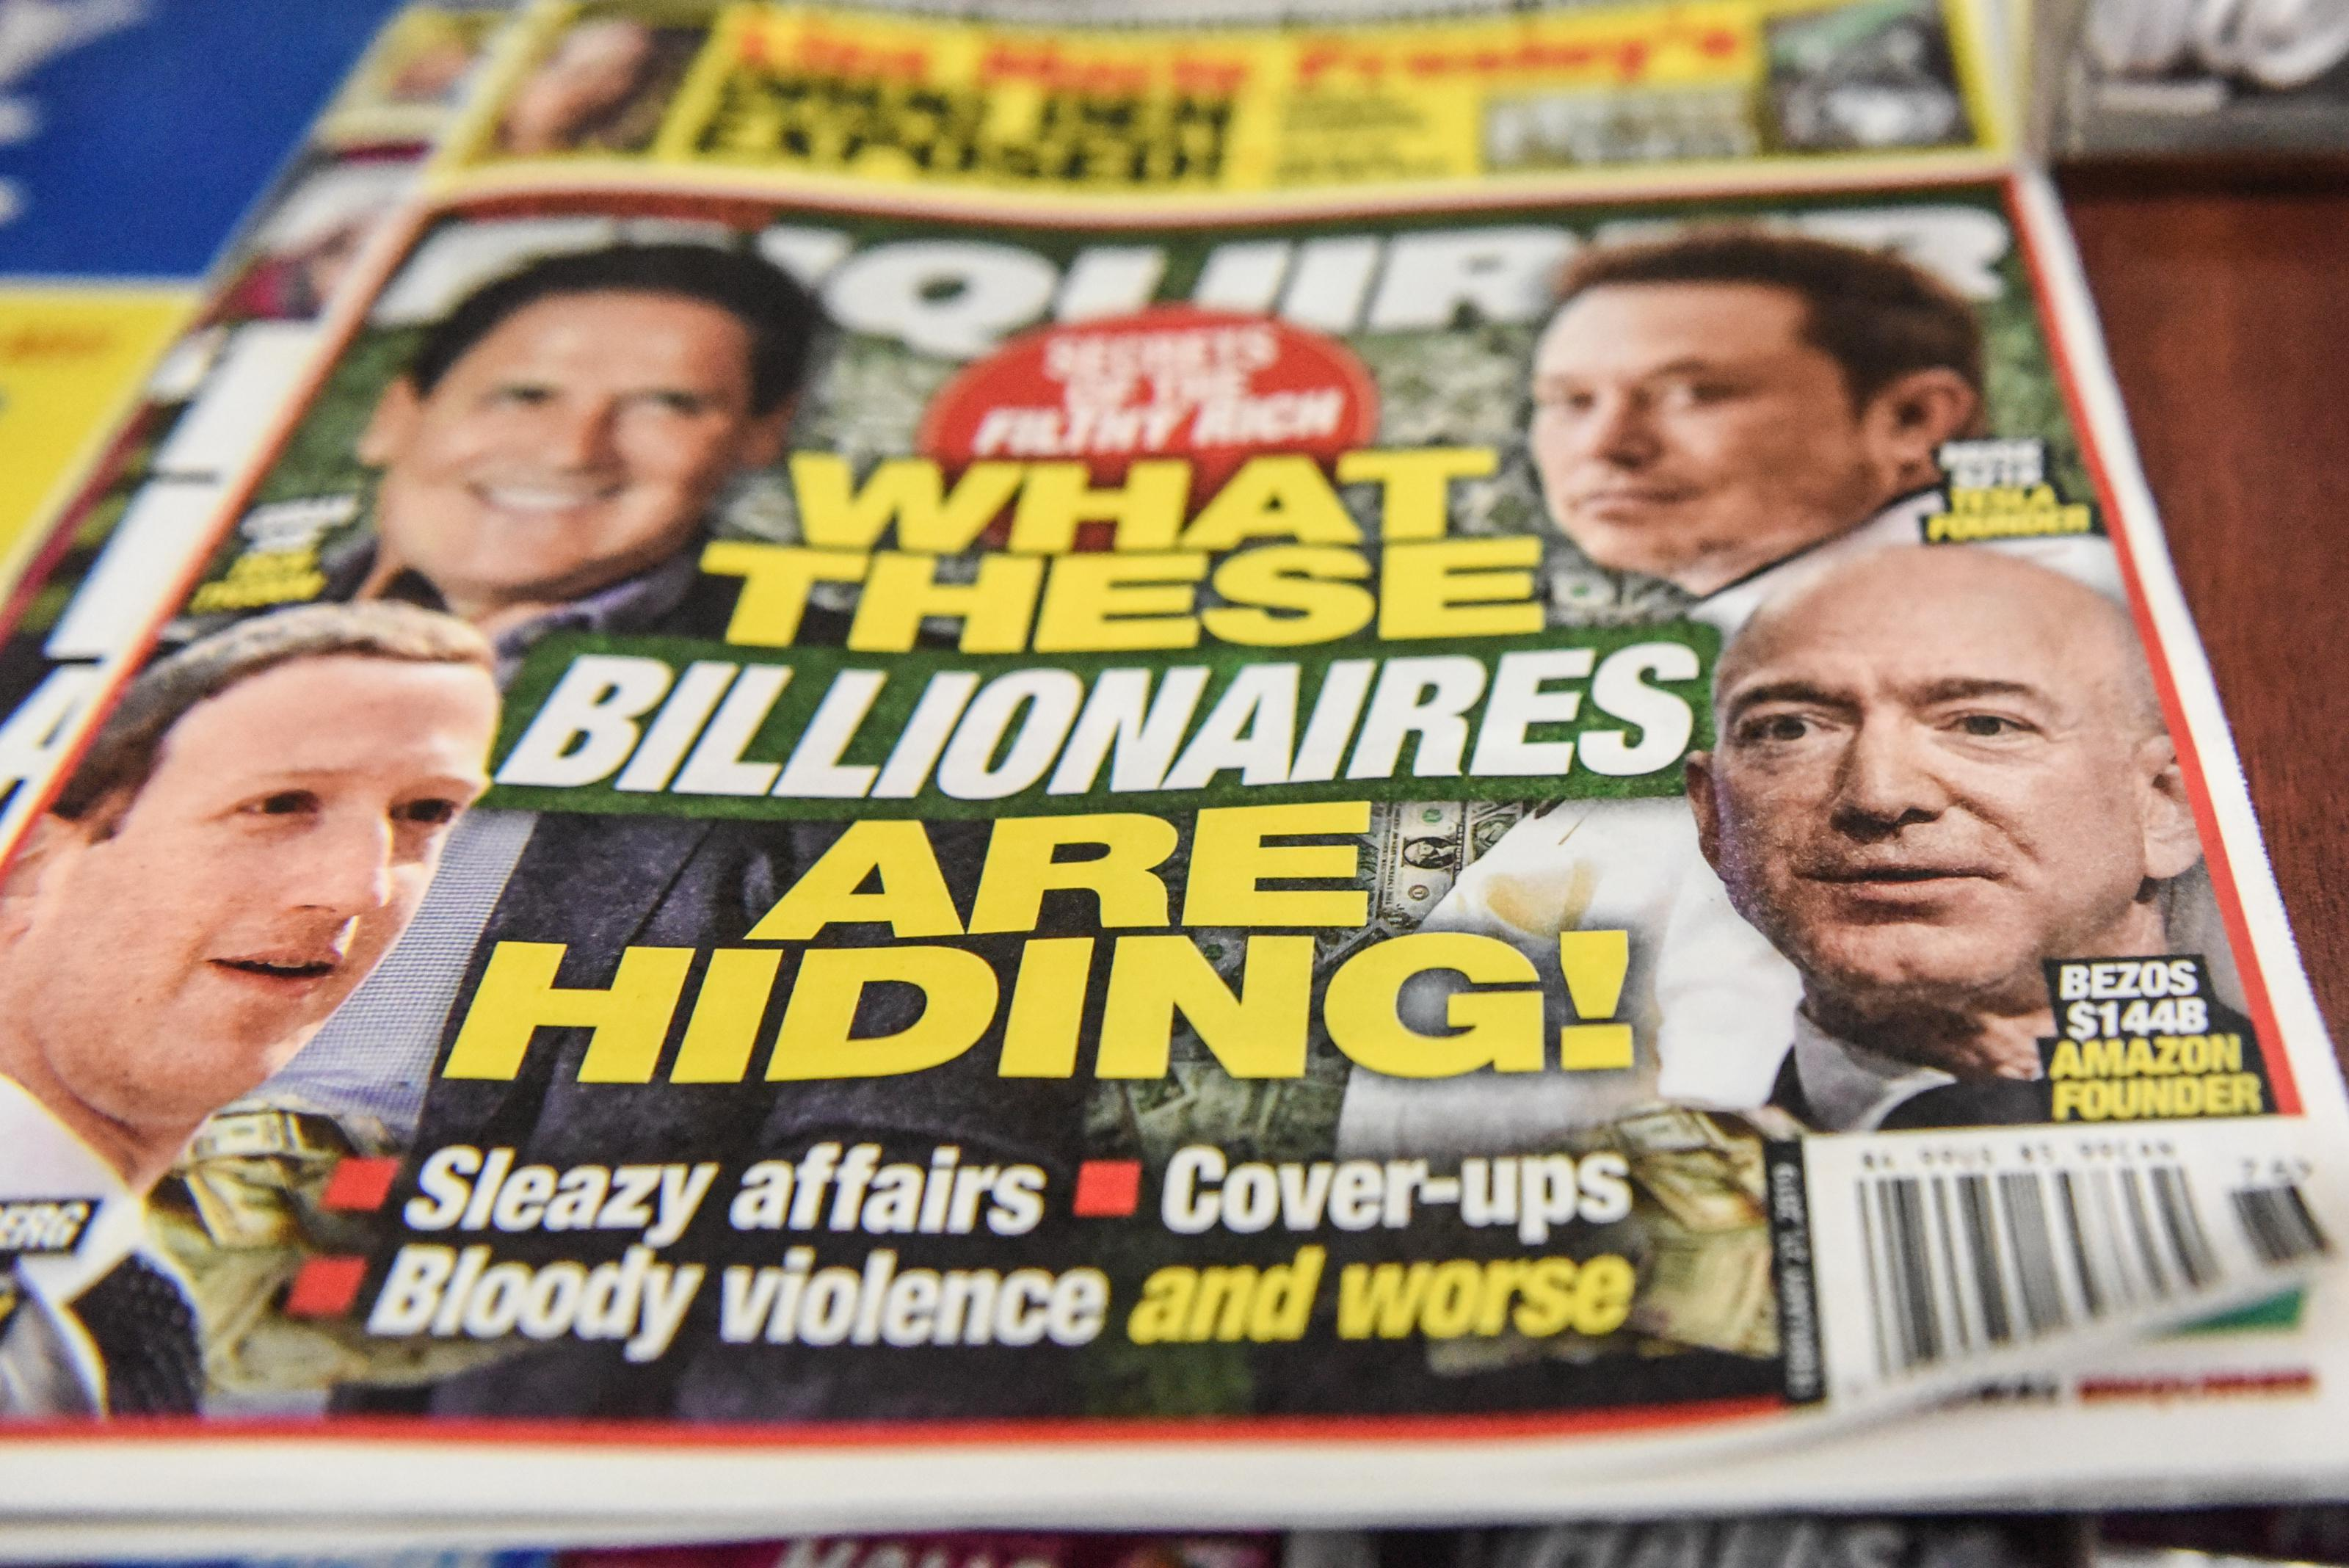 National Enquirer cover showing Jeff Bezos, other billionaires.